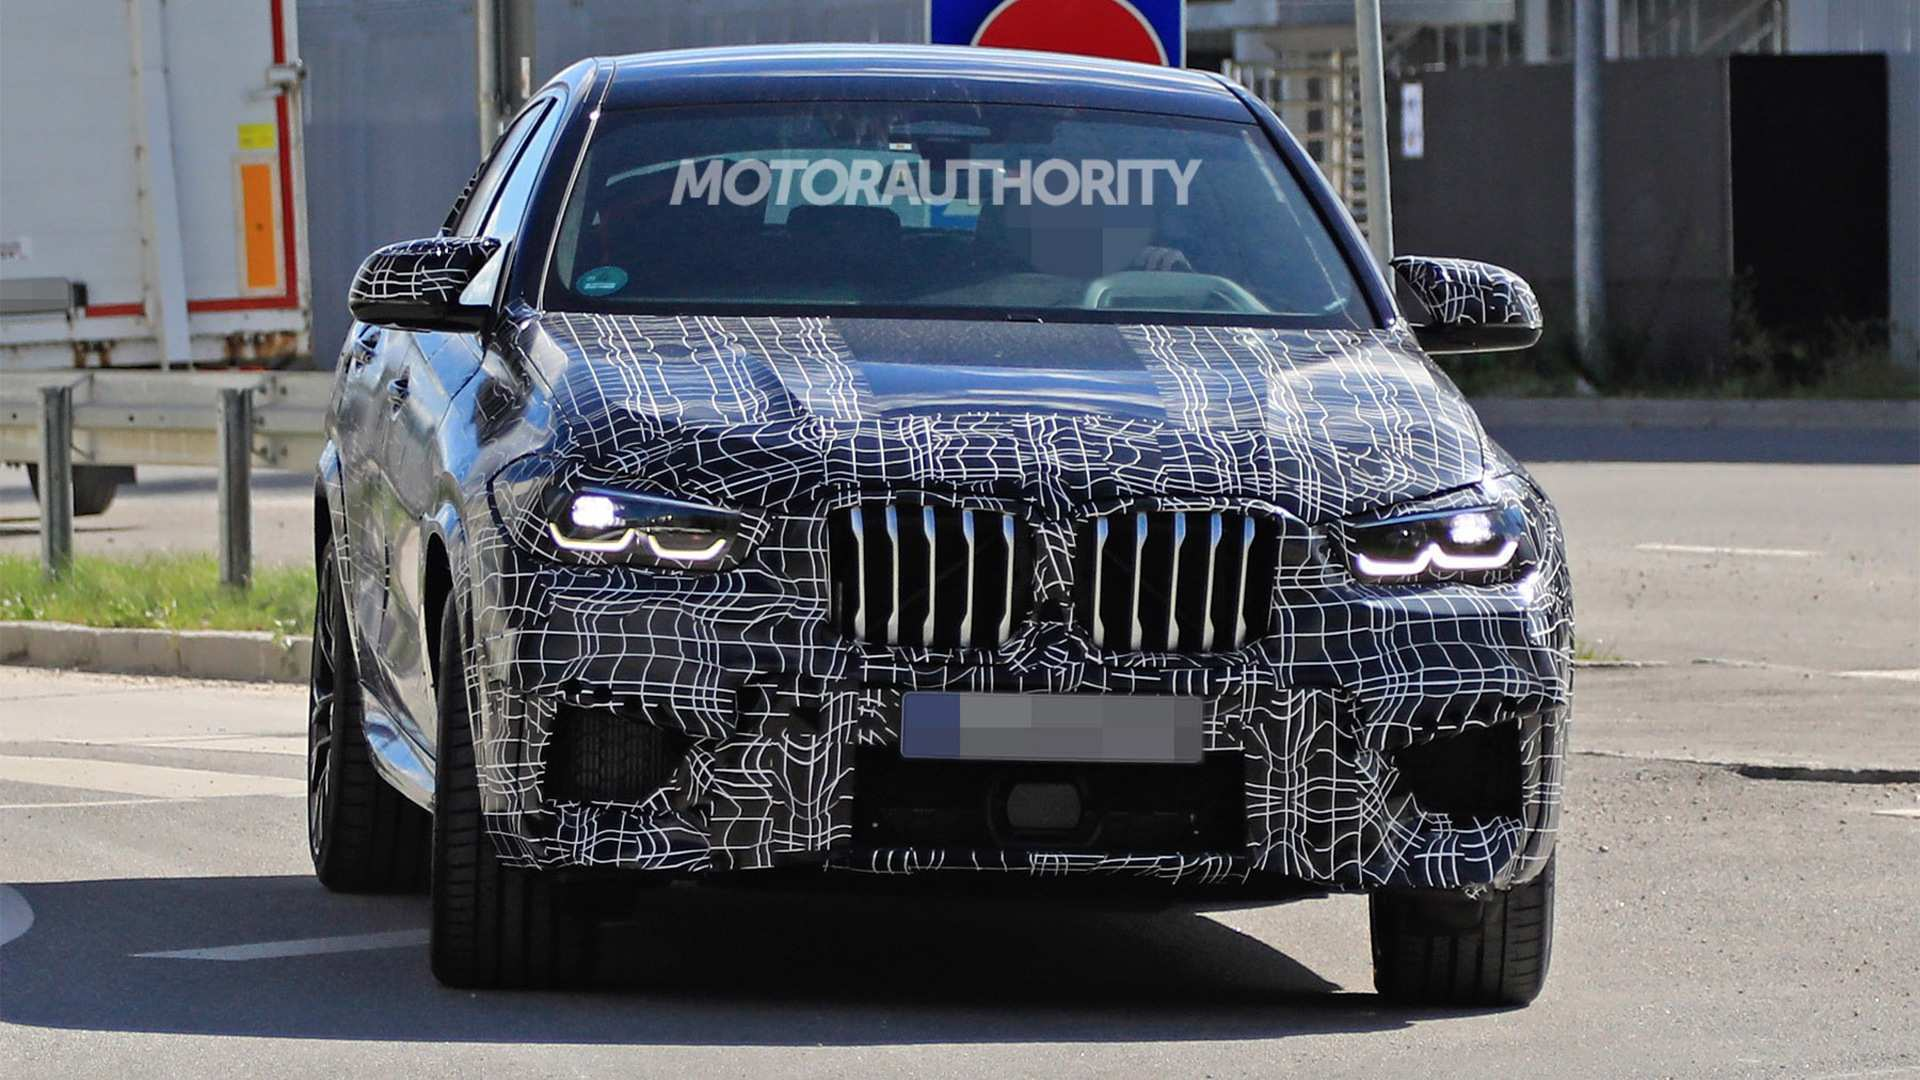 69 All New 2020 BMW X6 2020 Exterior and Interior with 2020 BMW X6 2020